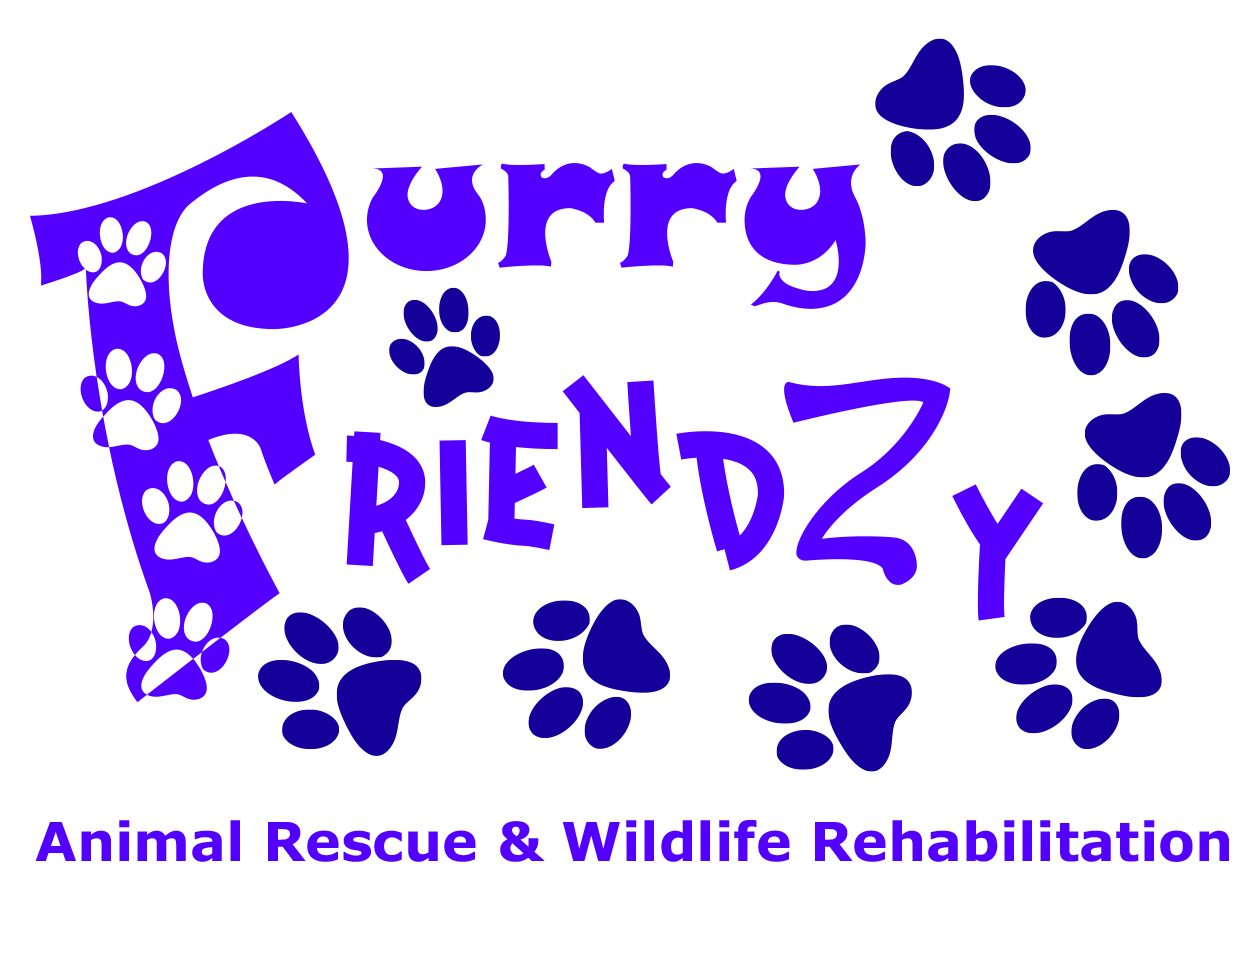 Furry Friendzy Animal Rescue & Wildlife Rehab